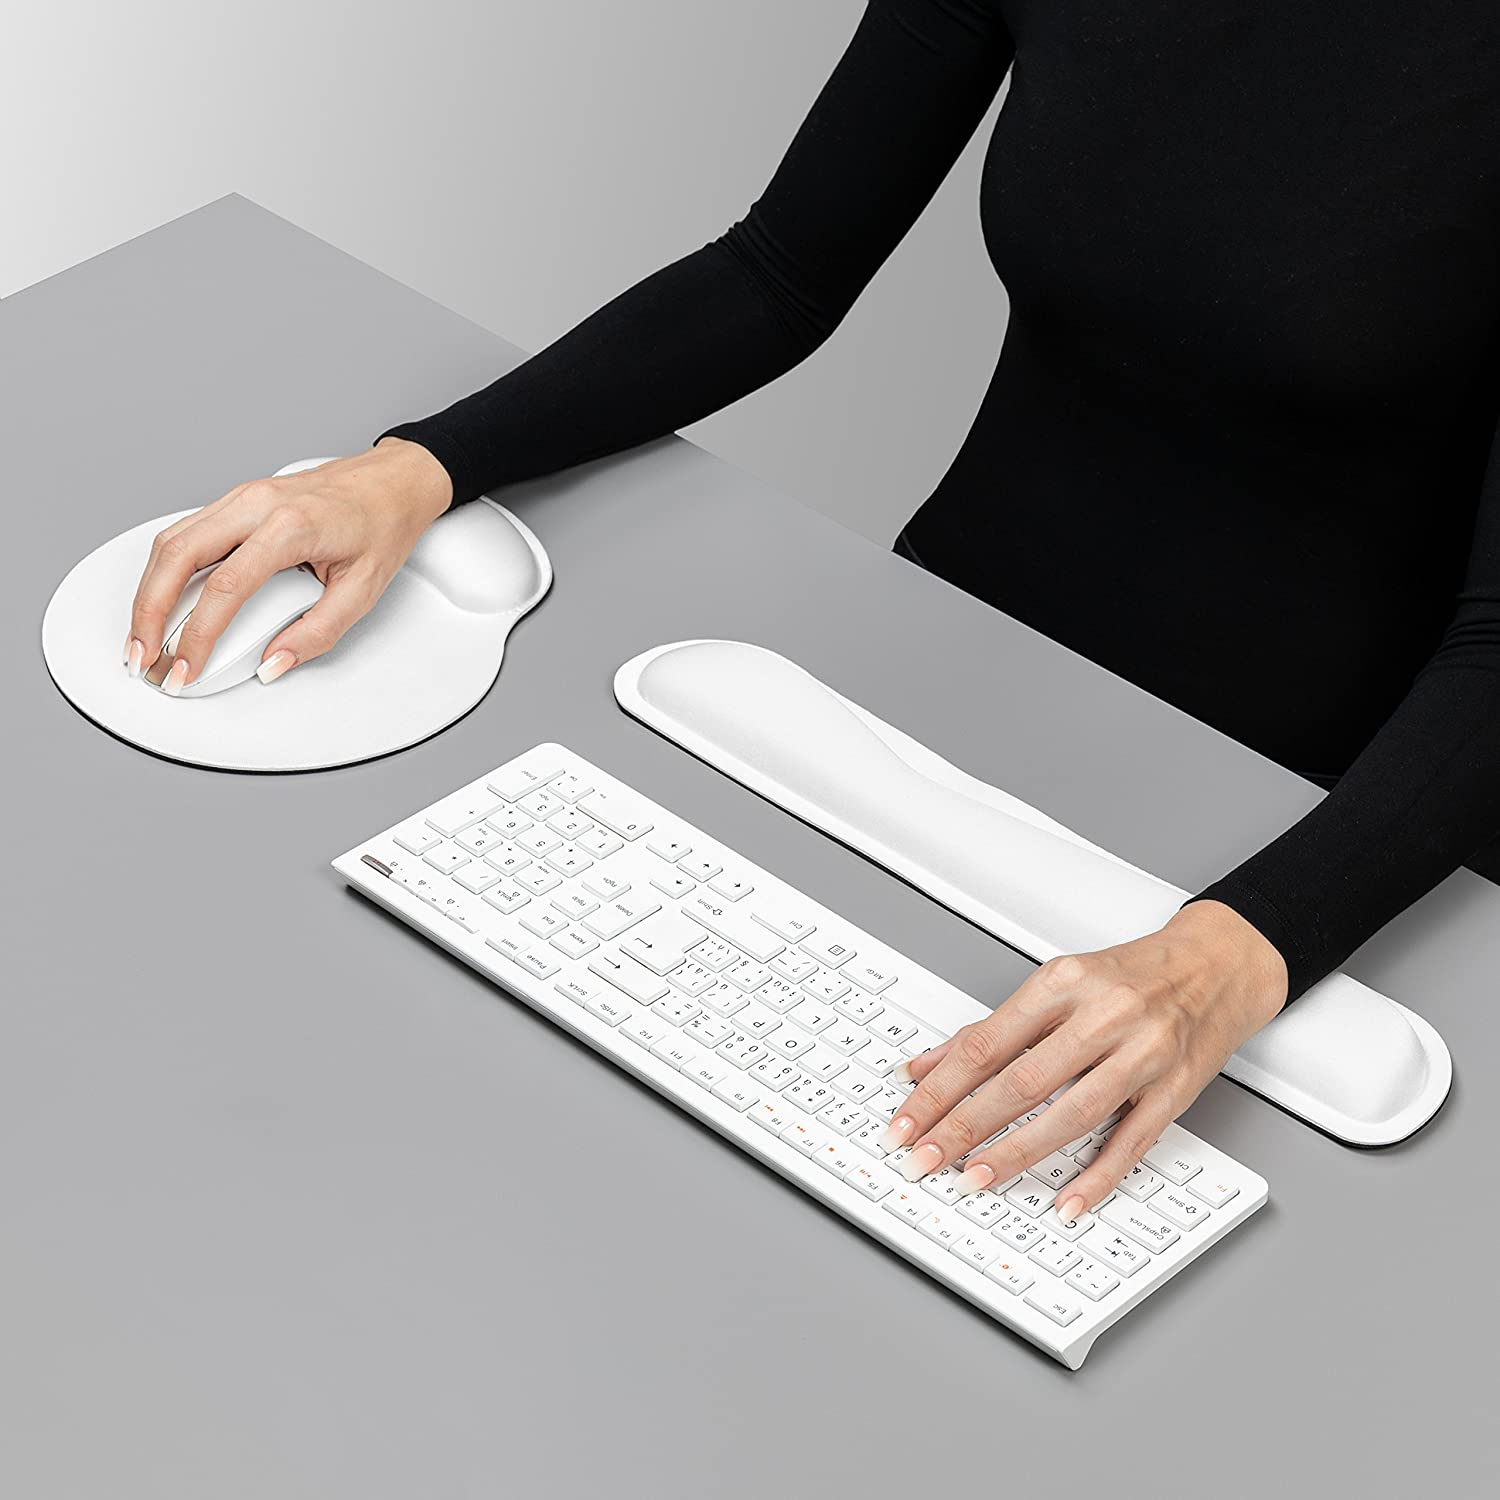 Laptop.Lightweight for Comfortably Typing Pain Relief and Repair. Computer Mouse Wrist Cushion with Wrist Support and Keyboard Rest Pad White Ergonomic PU Leather.Support for Office